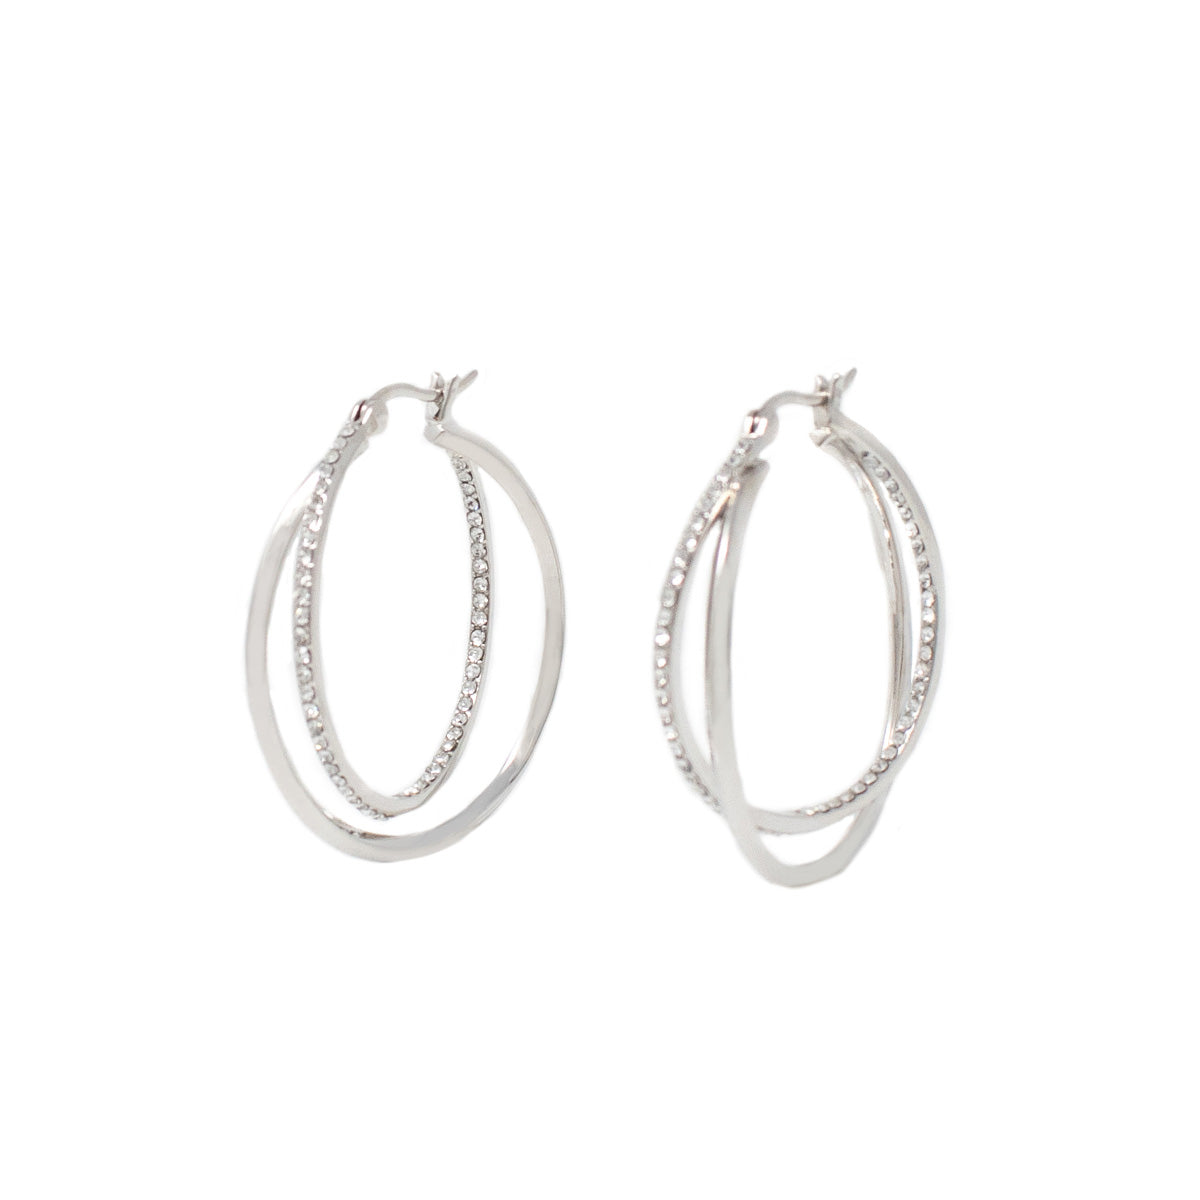 Cira Intertwined Pavé Hoop Earrings - Rhodium